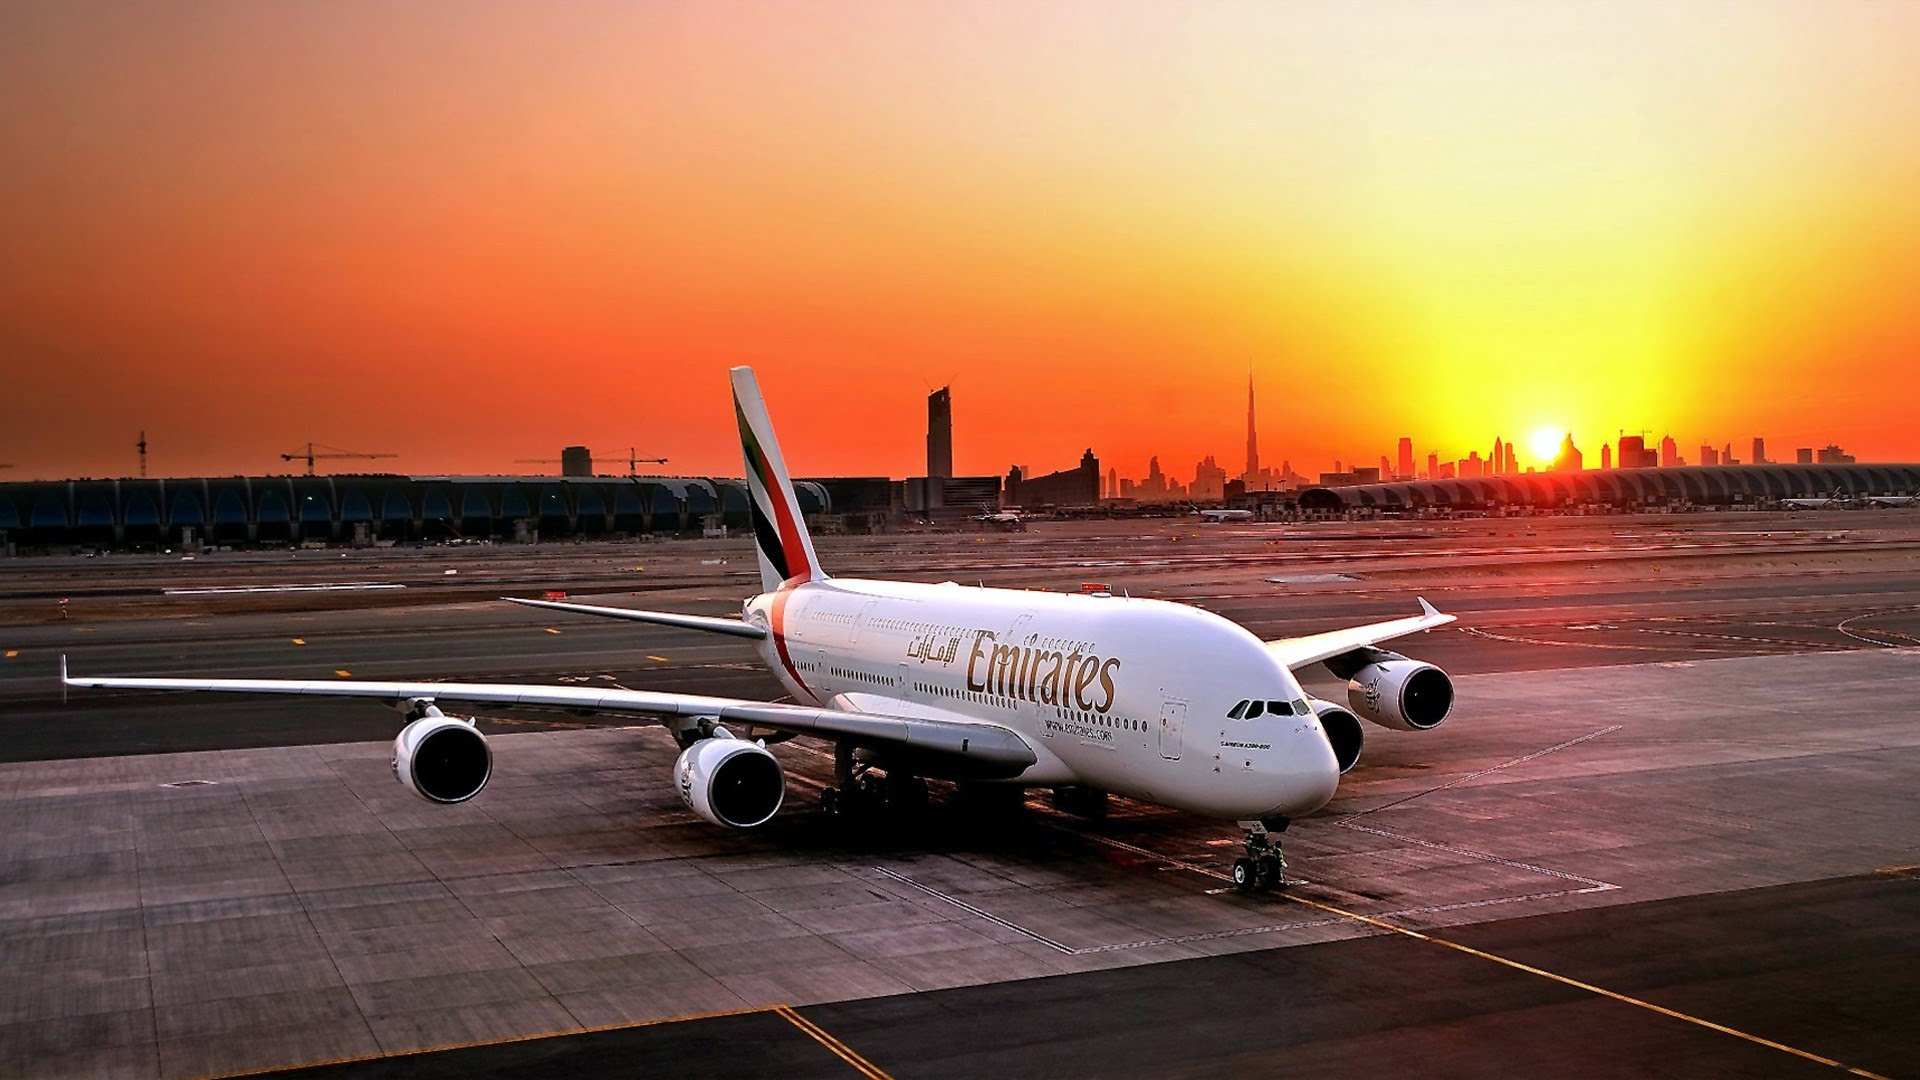 Emirates Airline awarded Best Airline in the World